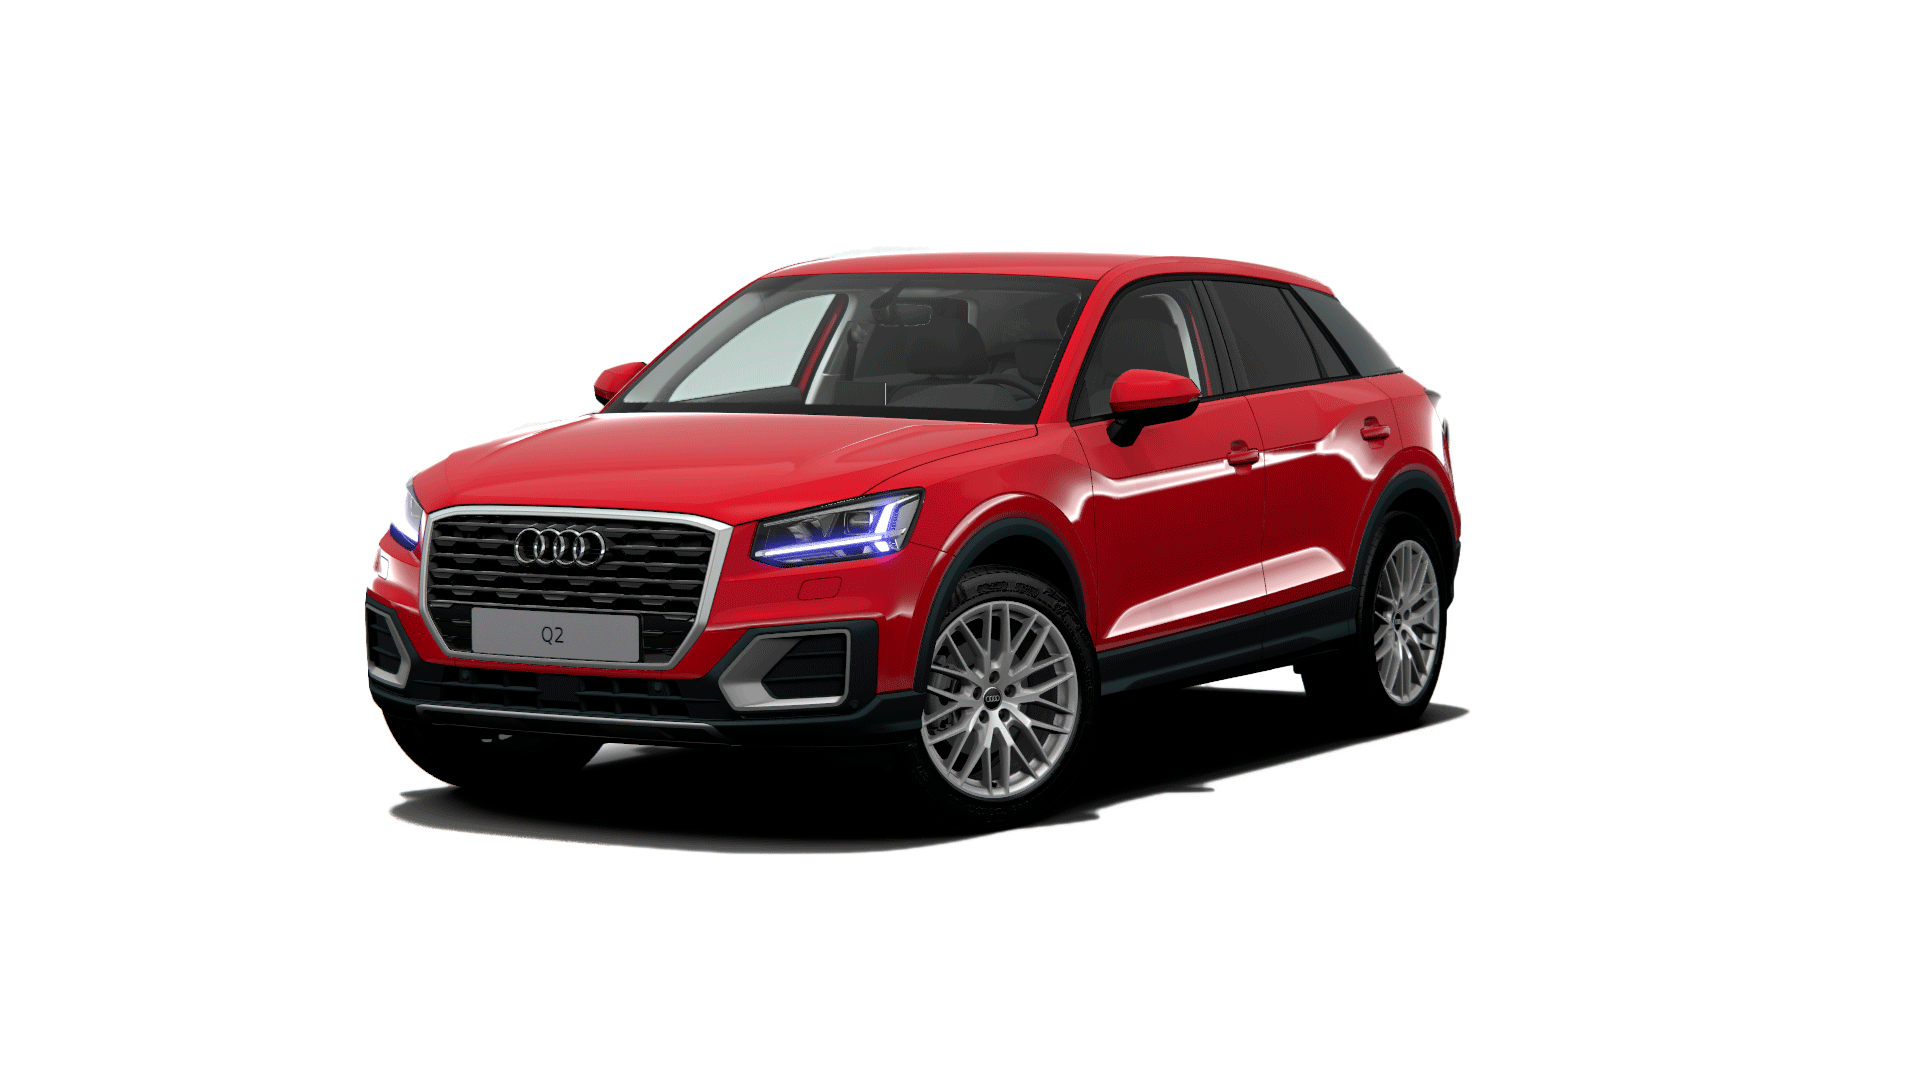 Audi-Q2-frontal-lateral